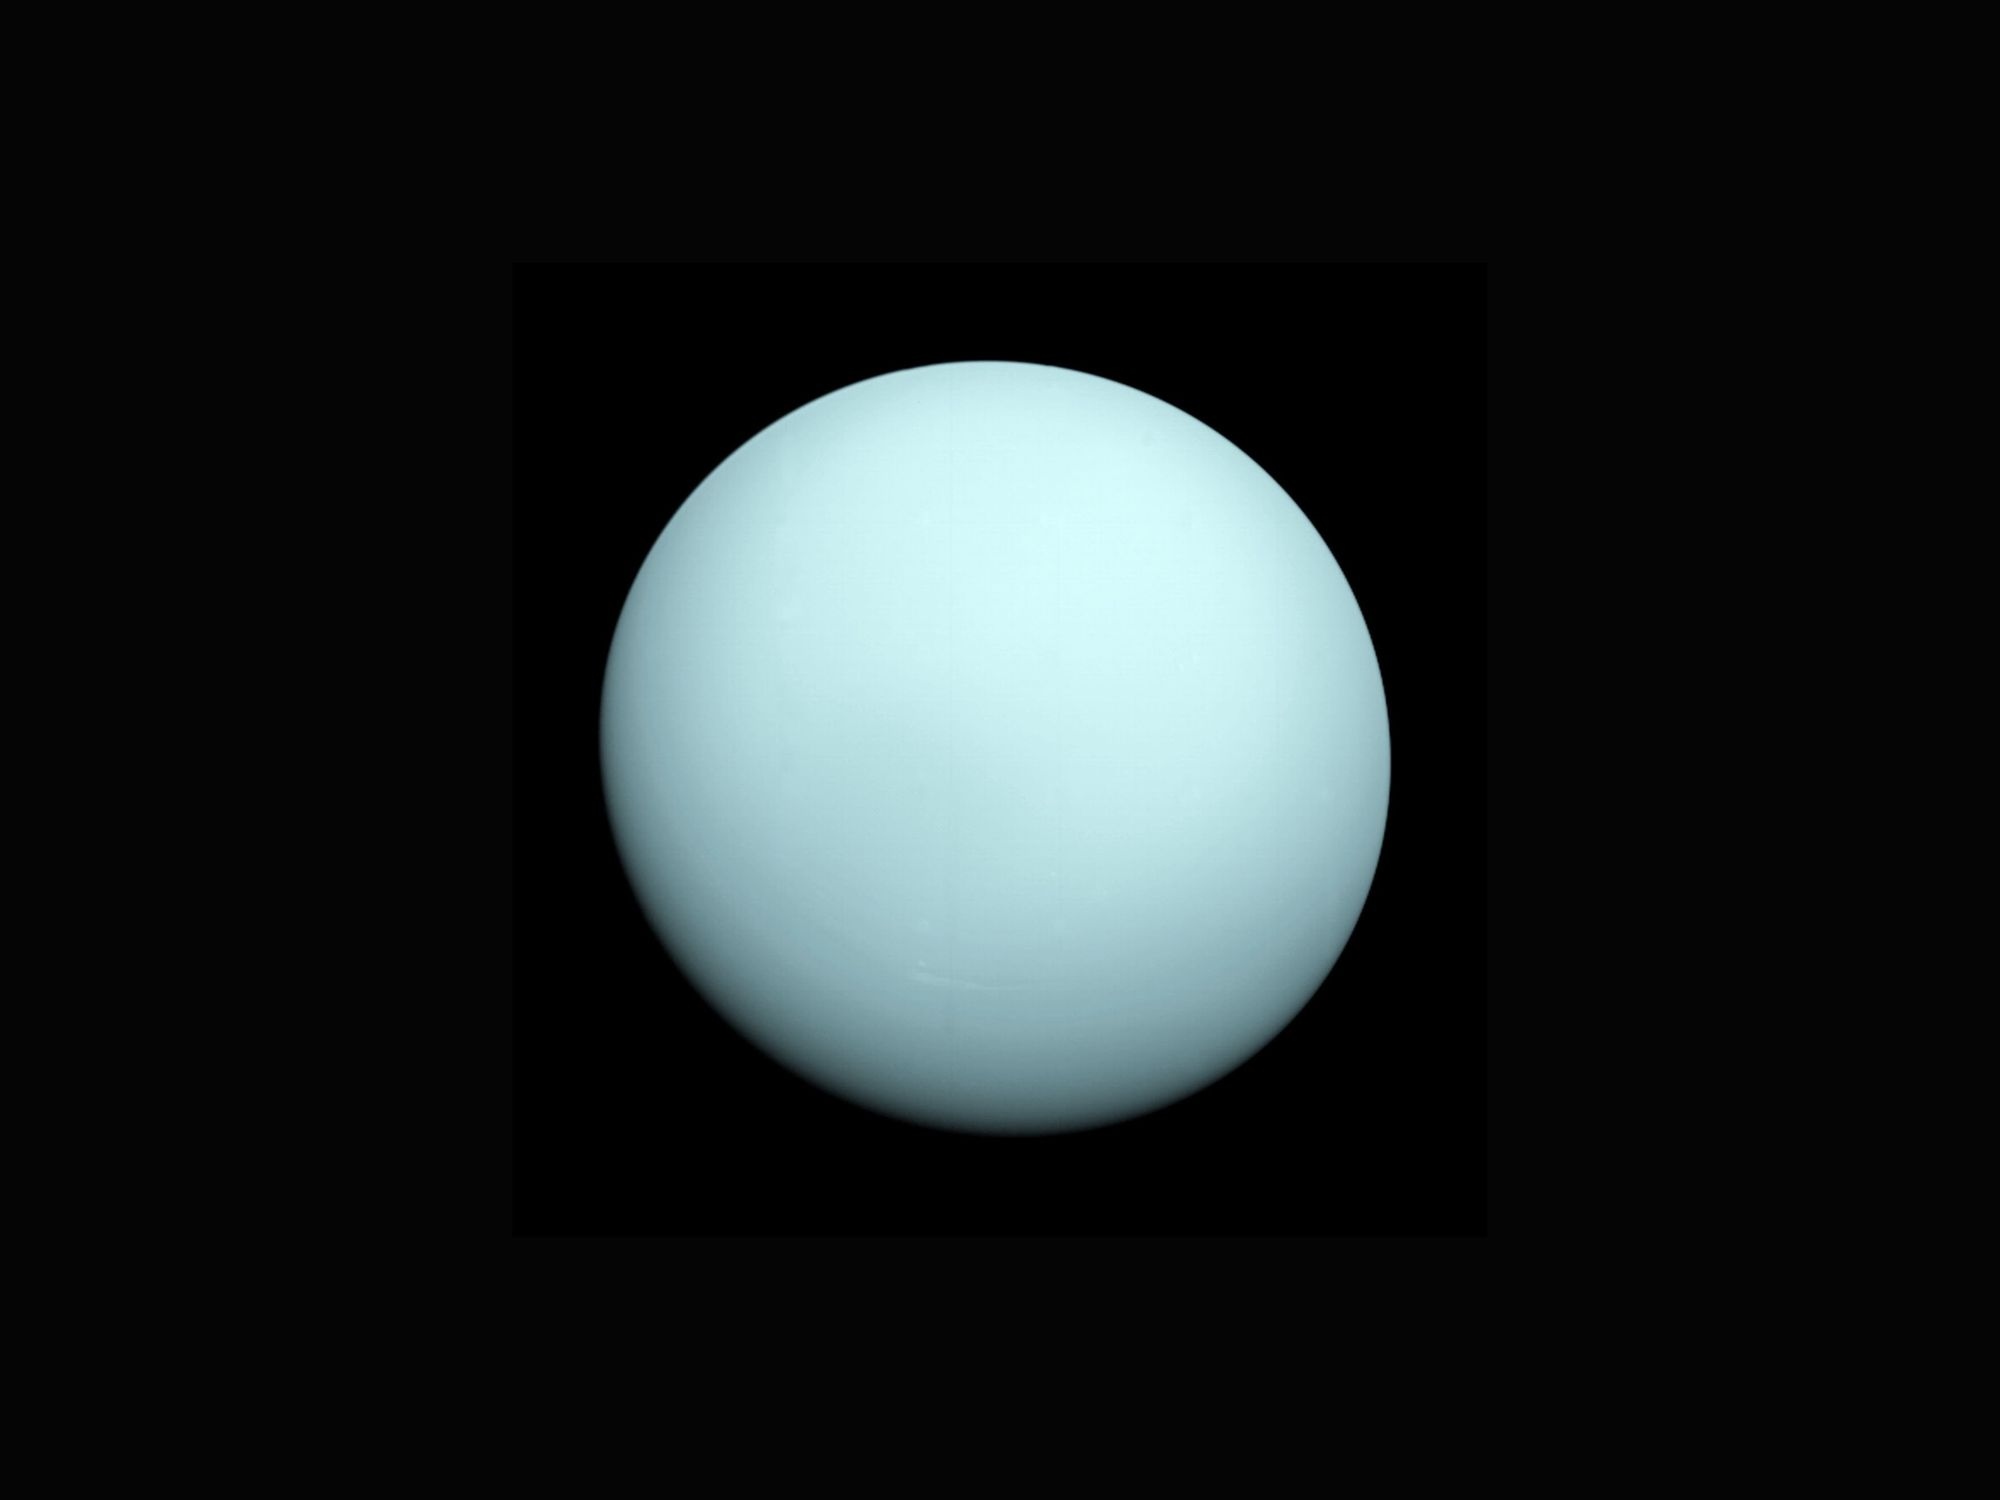 The planet Uranus seen by Voyager 2.